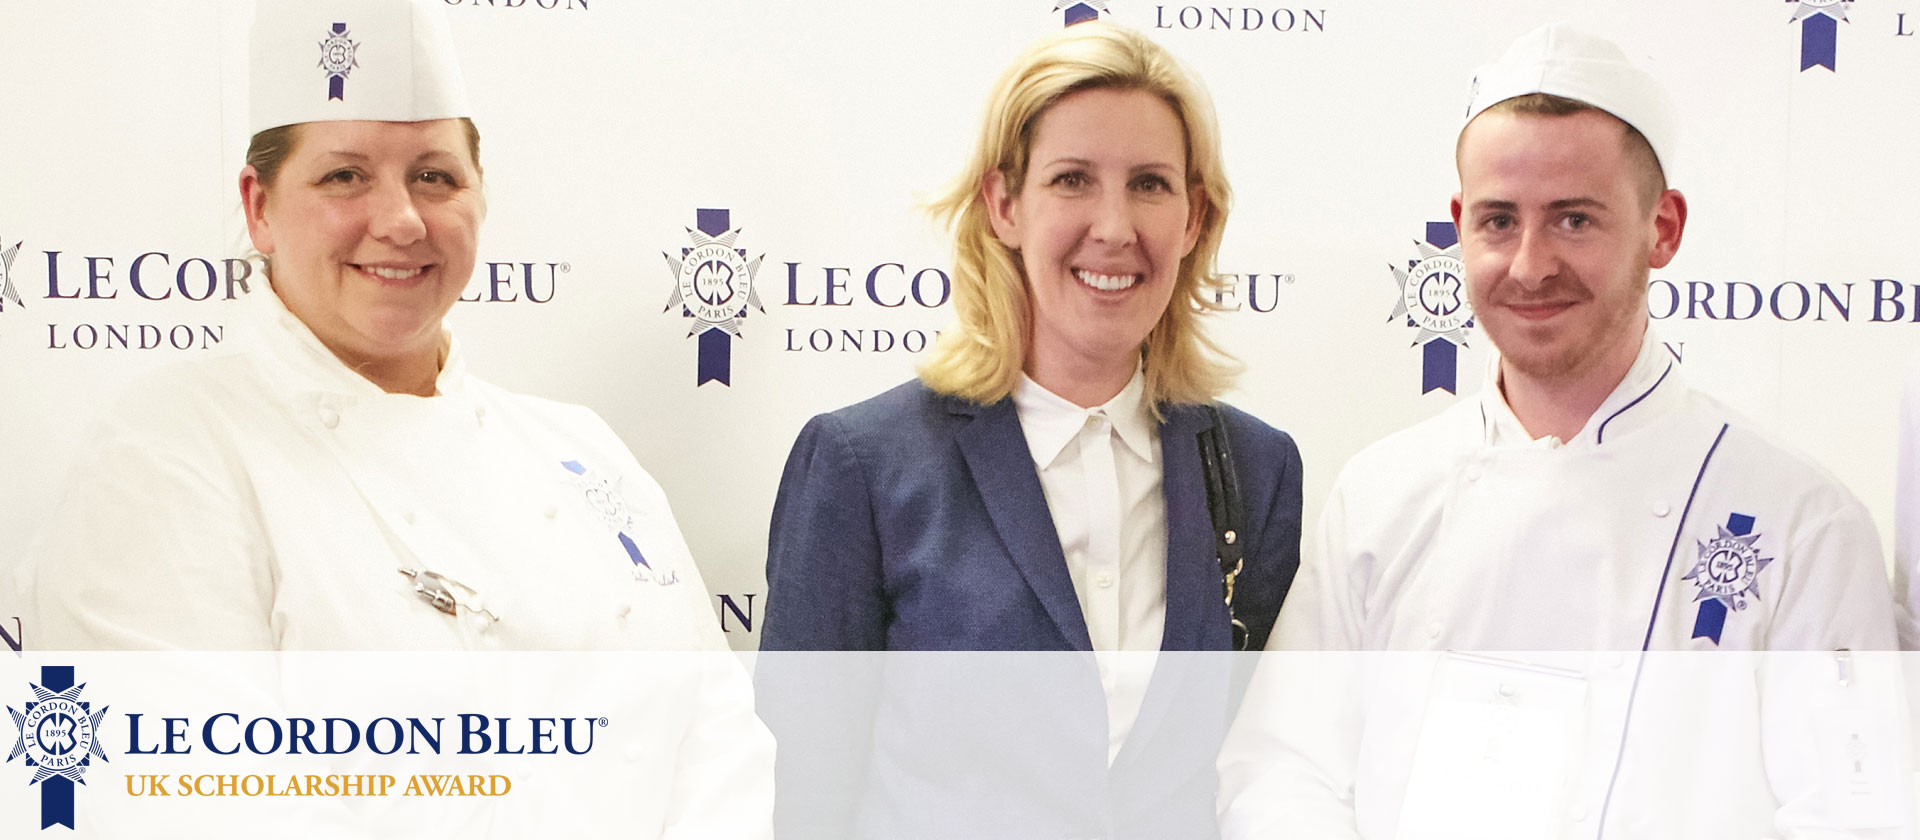 Keiron Murphy wins Le Cordon Bleu UK Scholarship Award with Clare Smyth